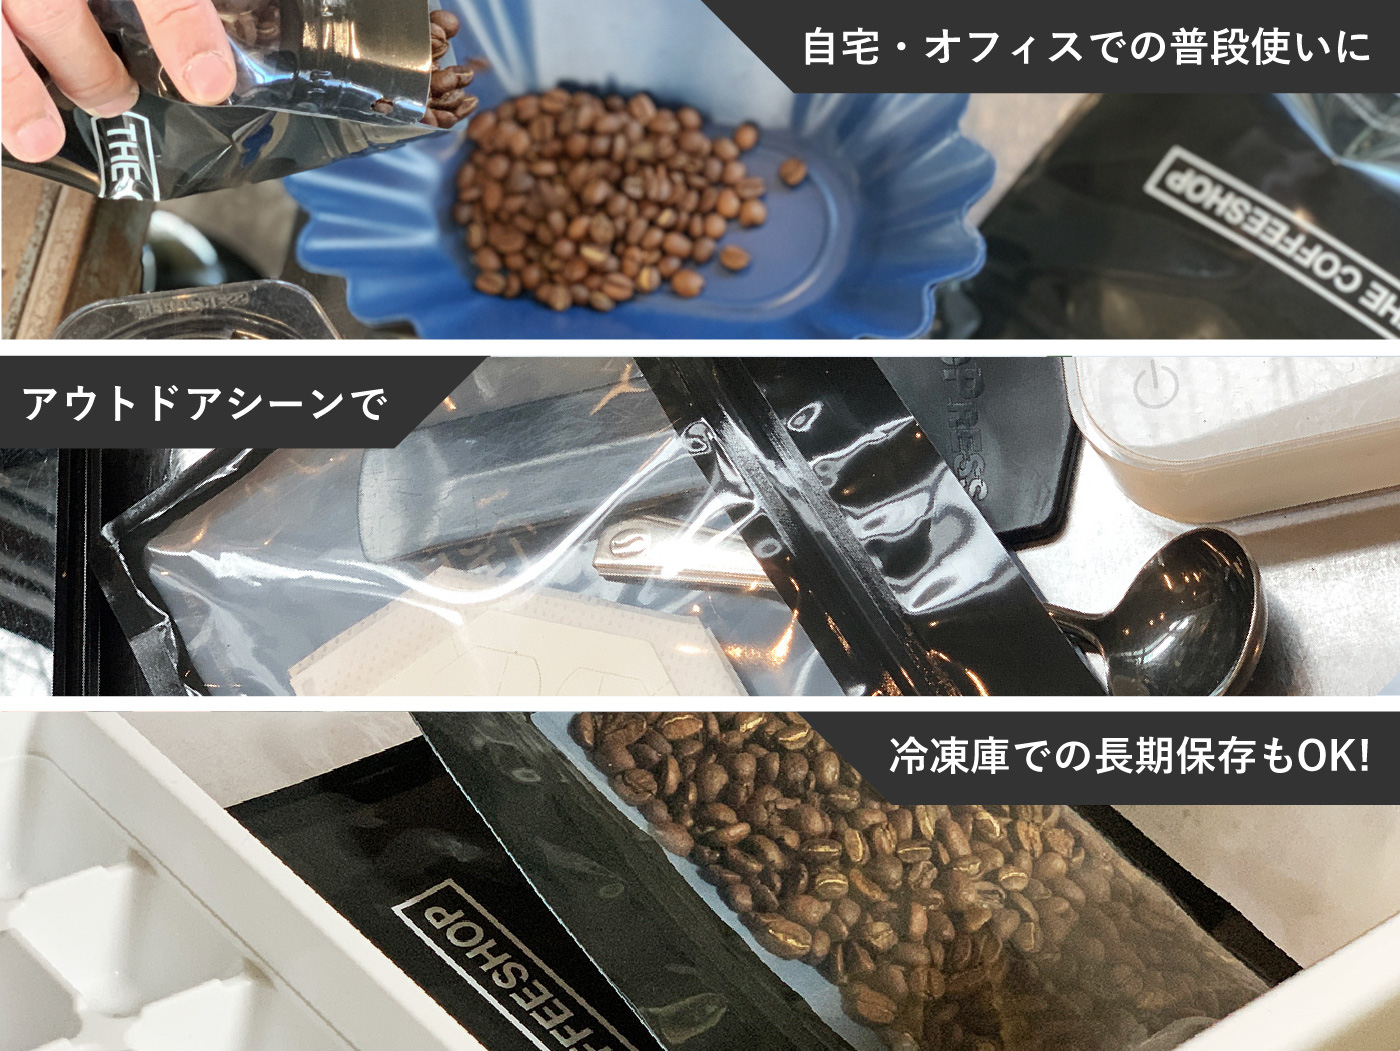 Beans Delivery Service pakeプレゼントキャンペーン